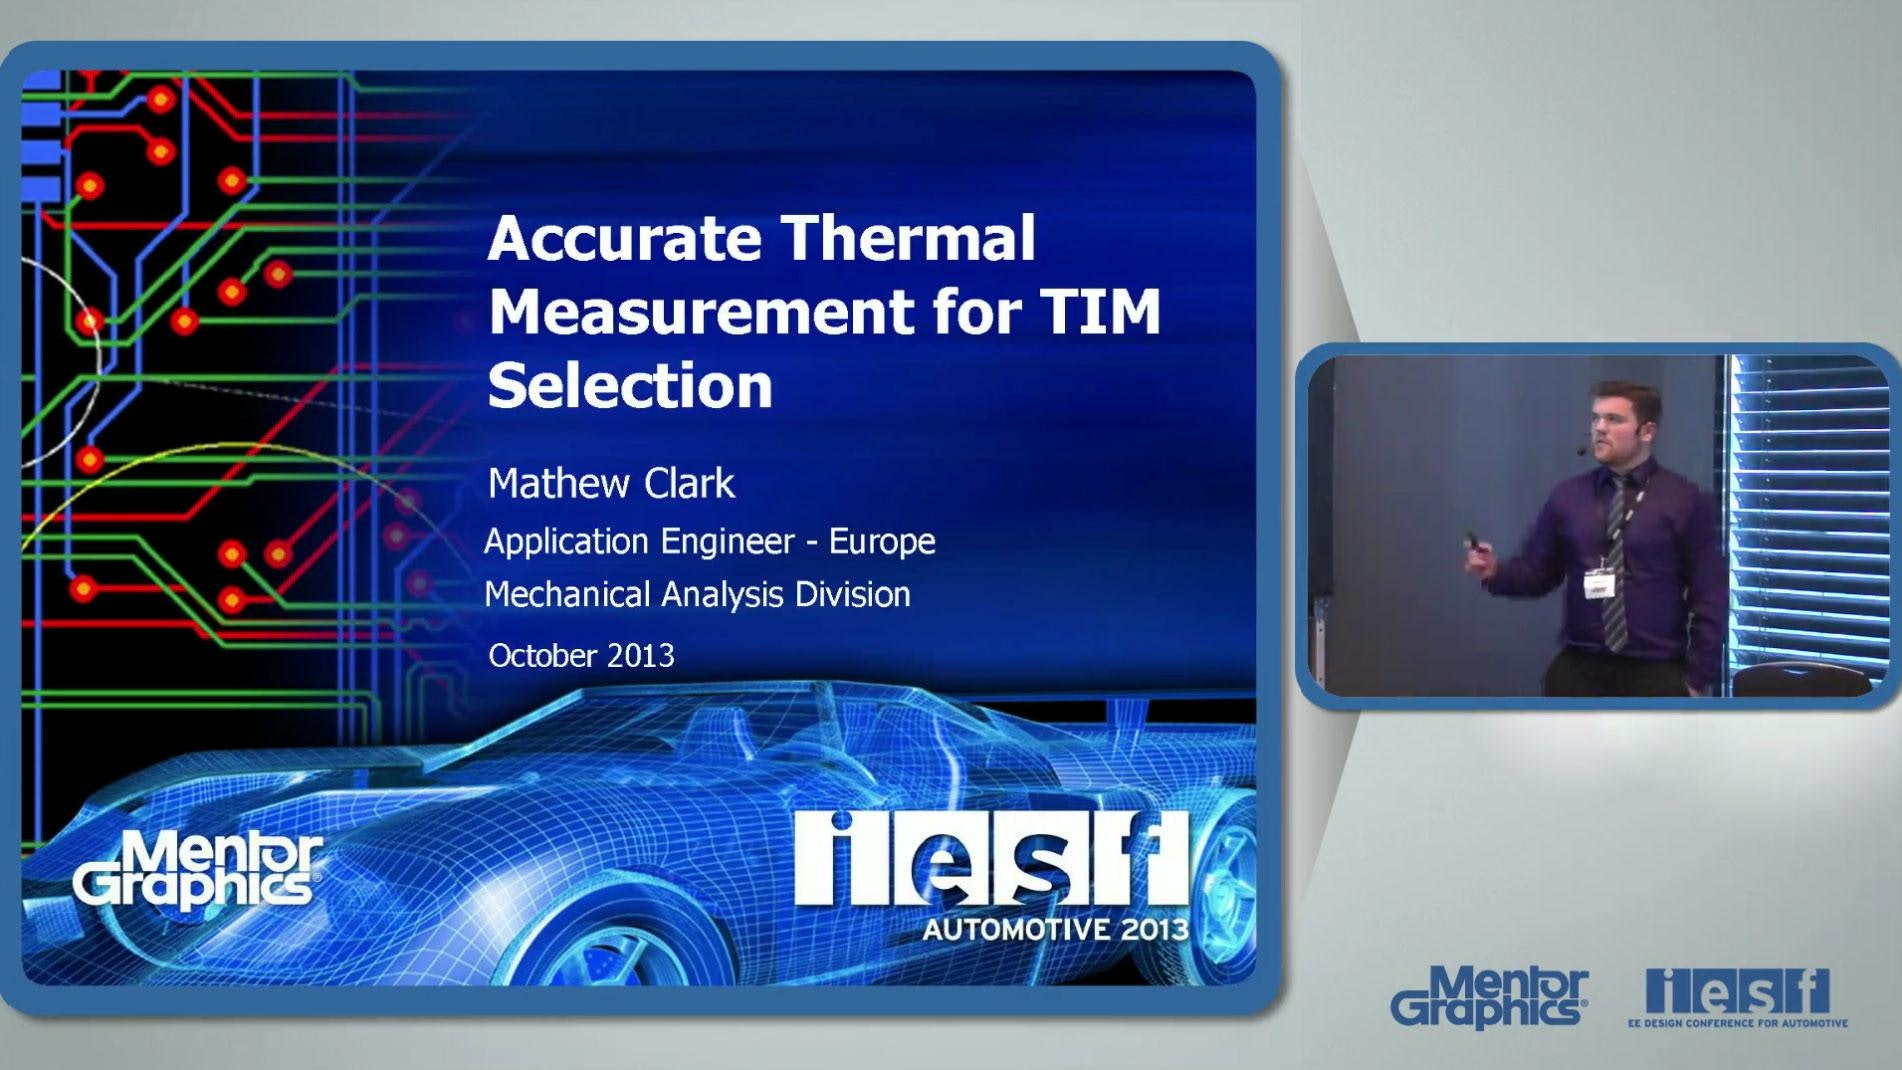 Selecting the right Thermal Interface Material (TIM) for electronics packages based on accurate thermal measurement data